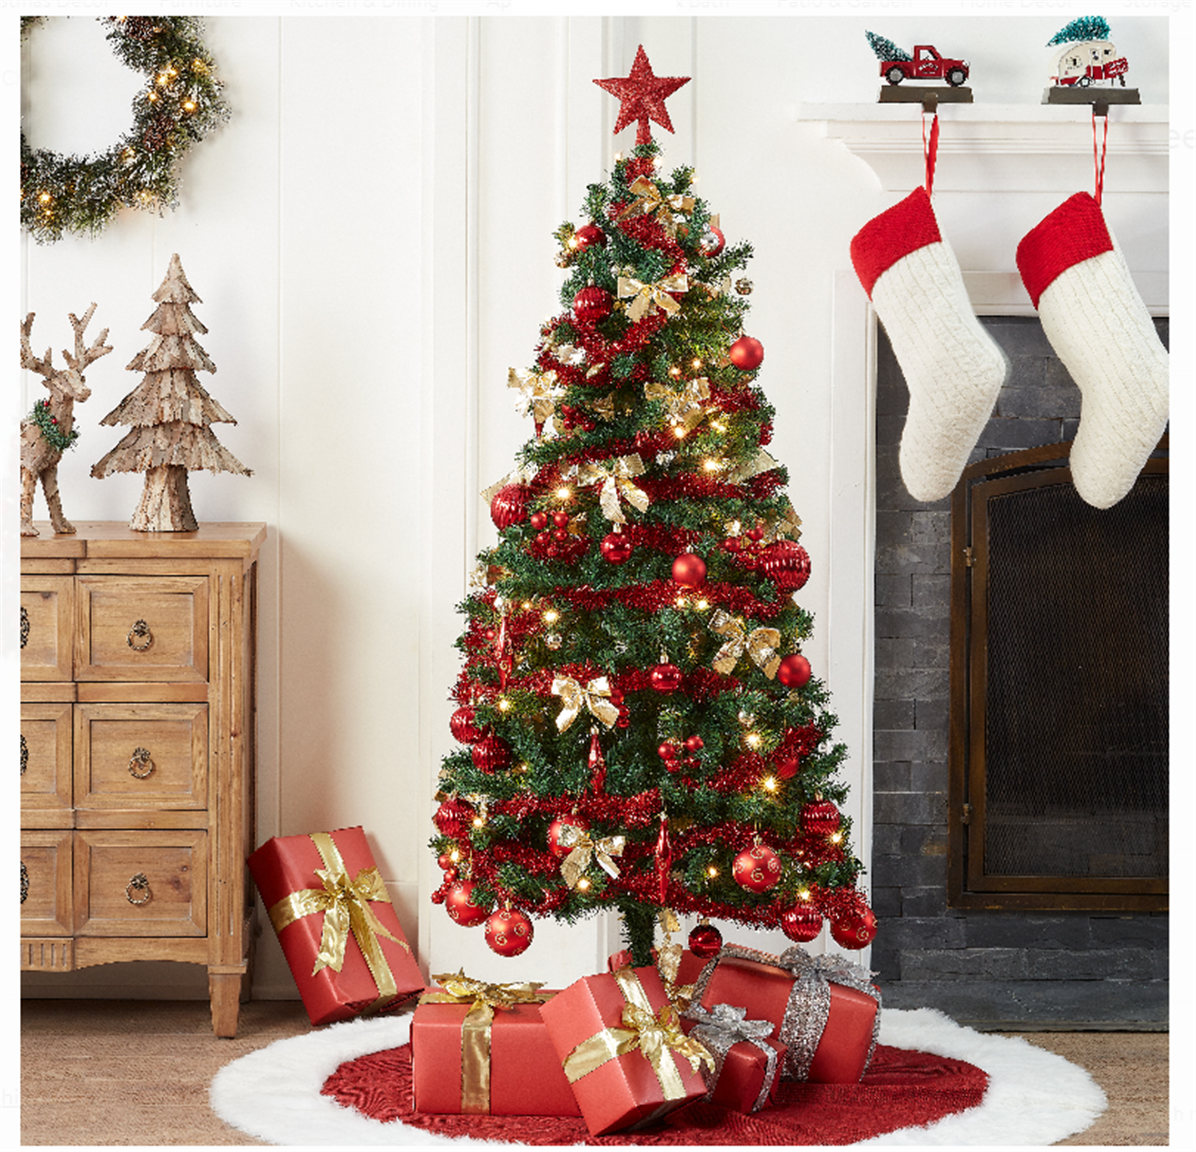 Walmart.com – Holiday Time Pre-Lit Christmas Tree 5 ft with Decorations Only $24, Reg $79+ Free Store Pickup!